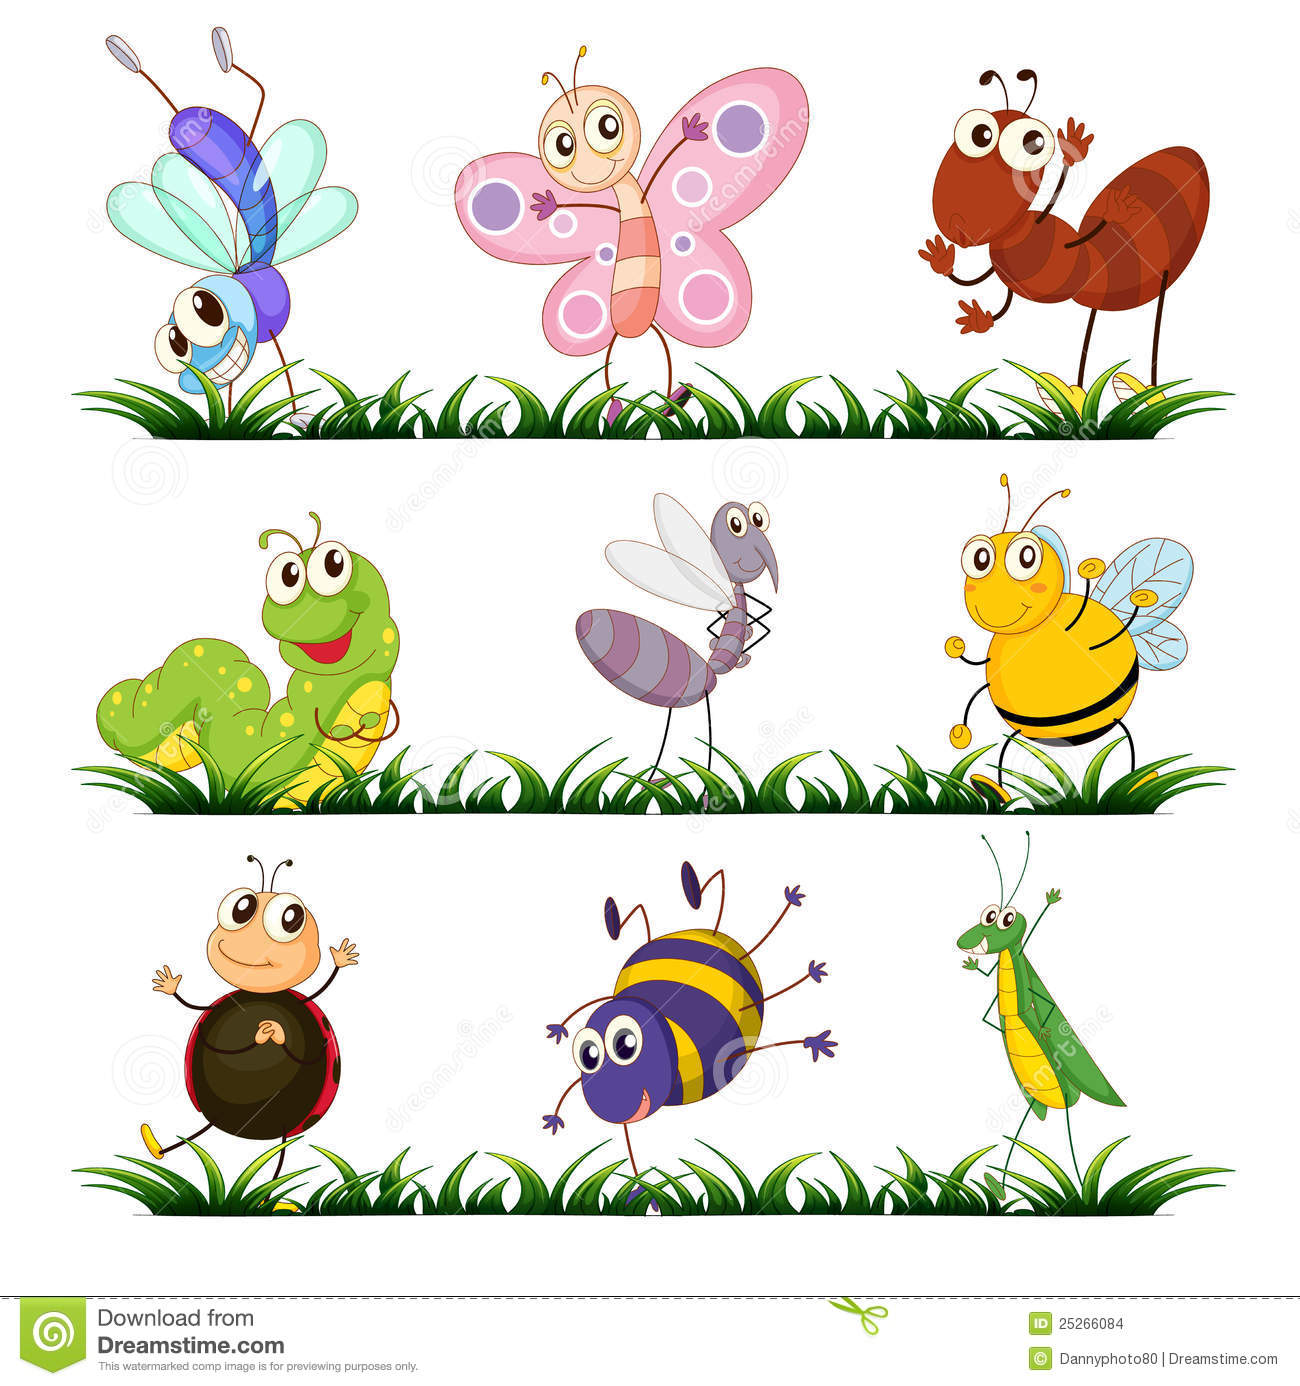 Insects clipart different insect.  clipartlook